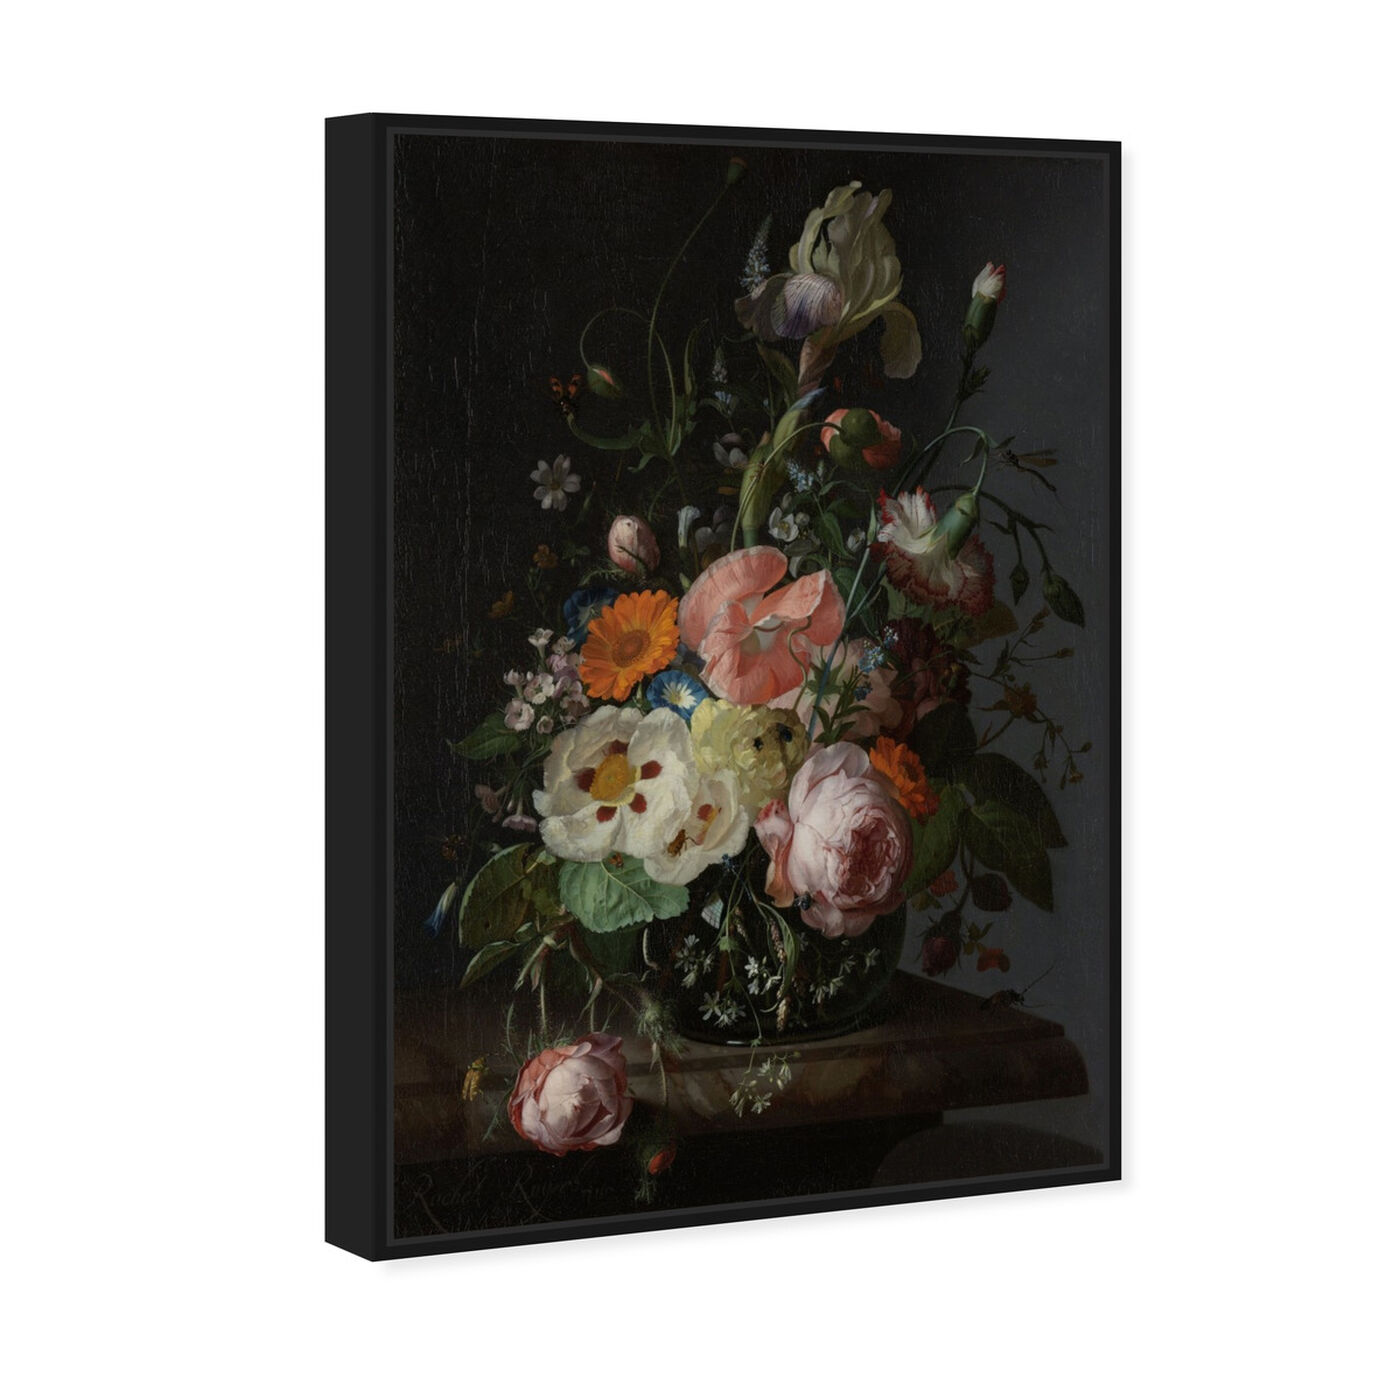 Angled view of Flower Arrangement IV - The Art Cabinet featuring classic and figurative and french décor art.